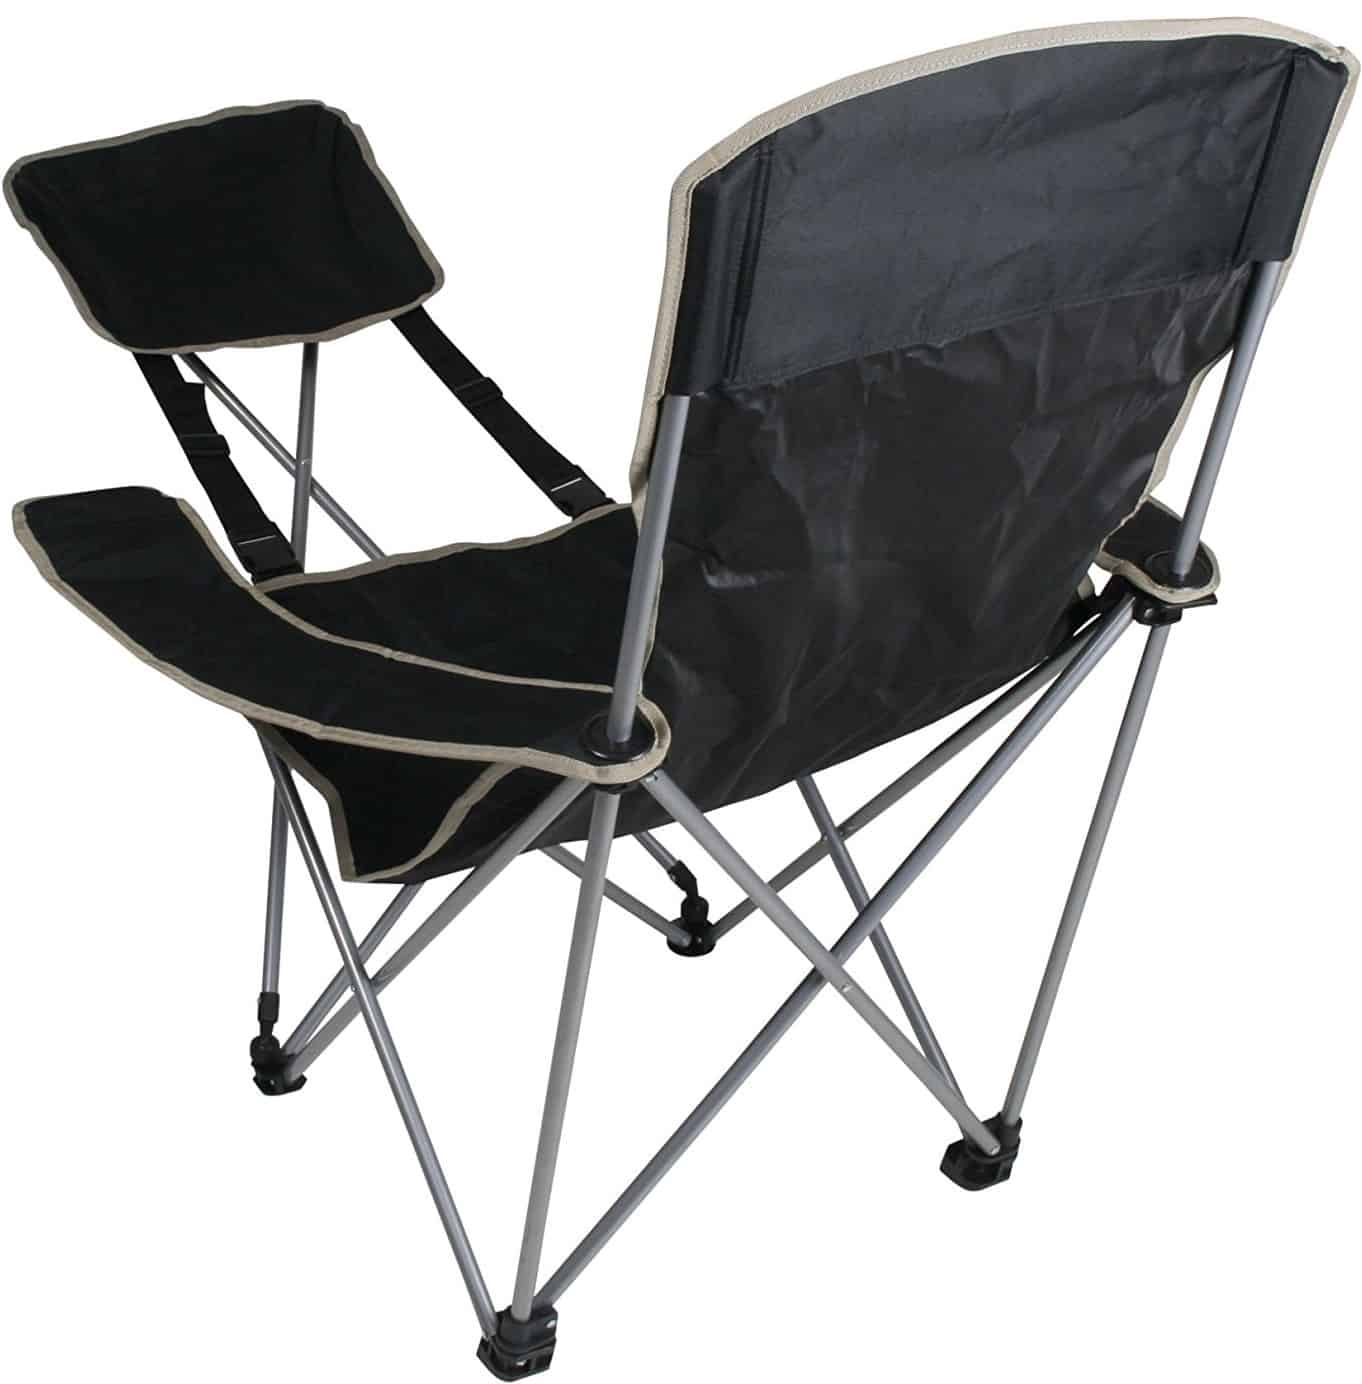 camping chair reviews: what are the best camping chairs 2018?